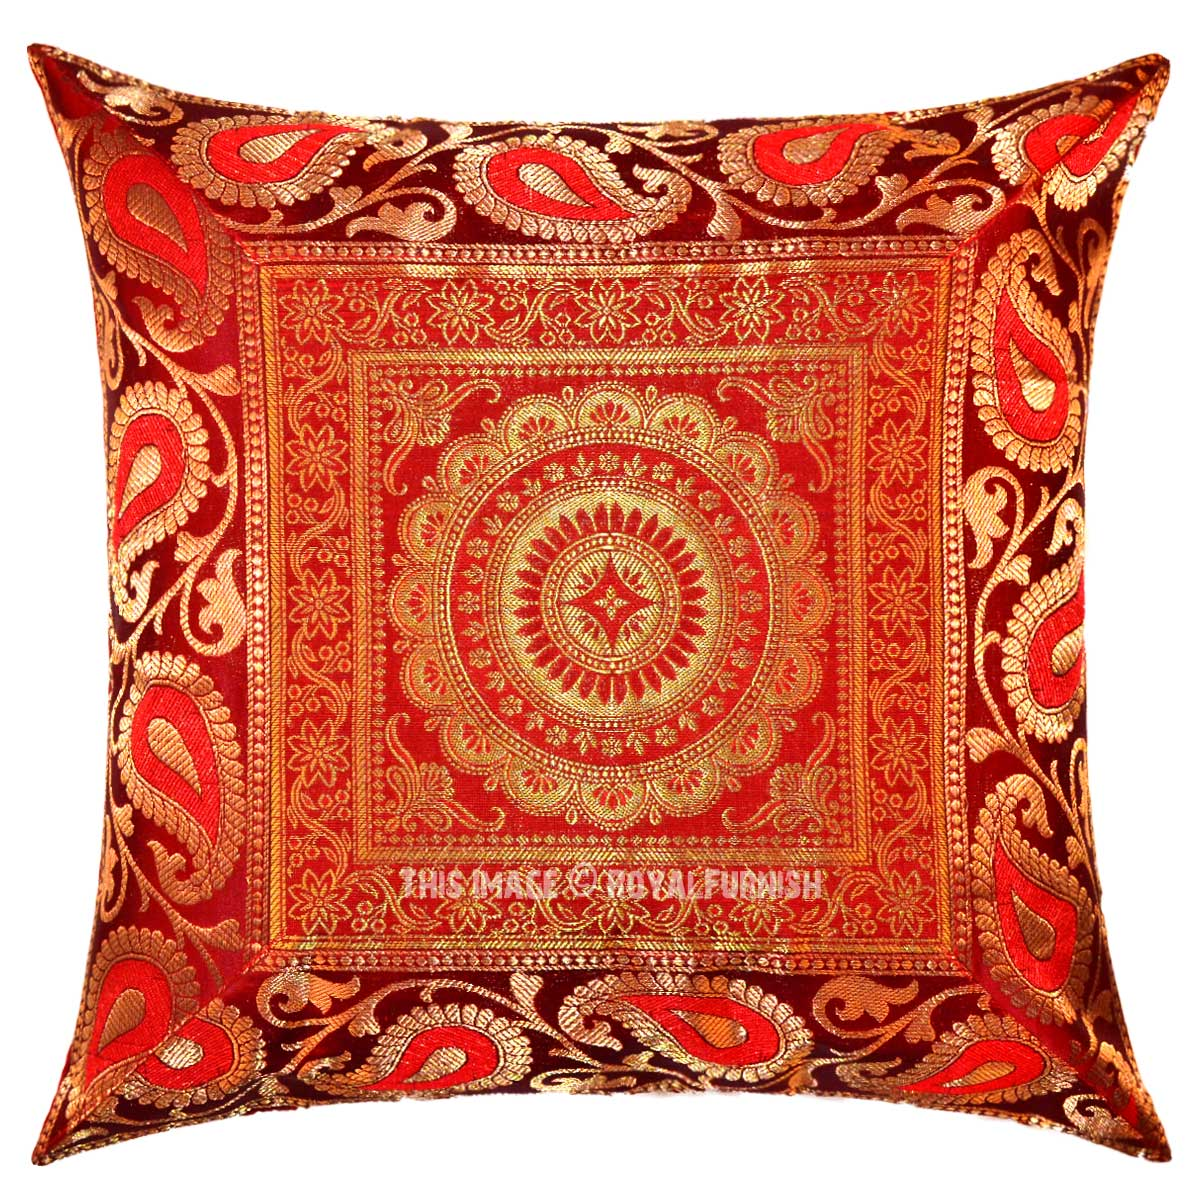 Unique Decorative Accent Pillows : Red Flower Medallion Circle Decorative Unique Handcrafted Silk Pillow Cover 16X16 - RoyalFurnish.com